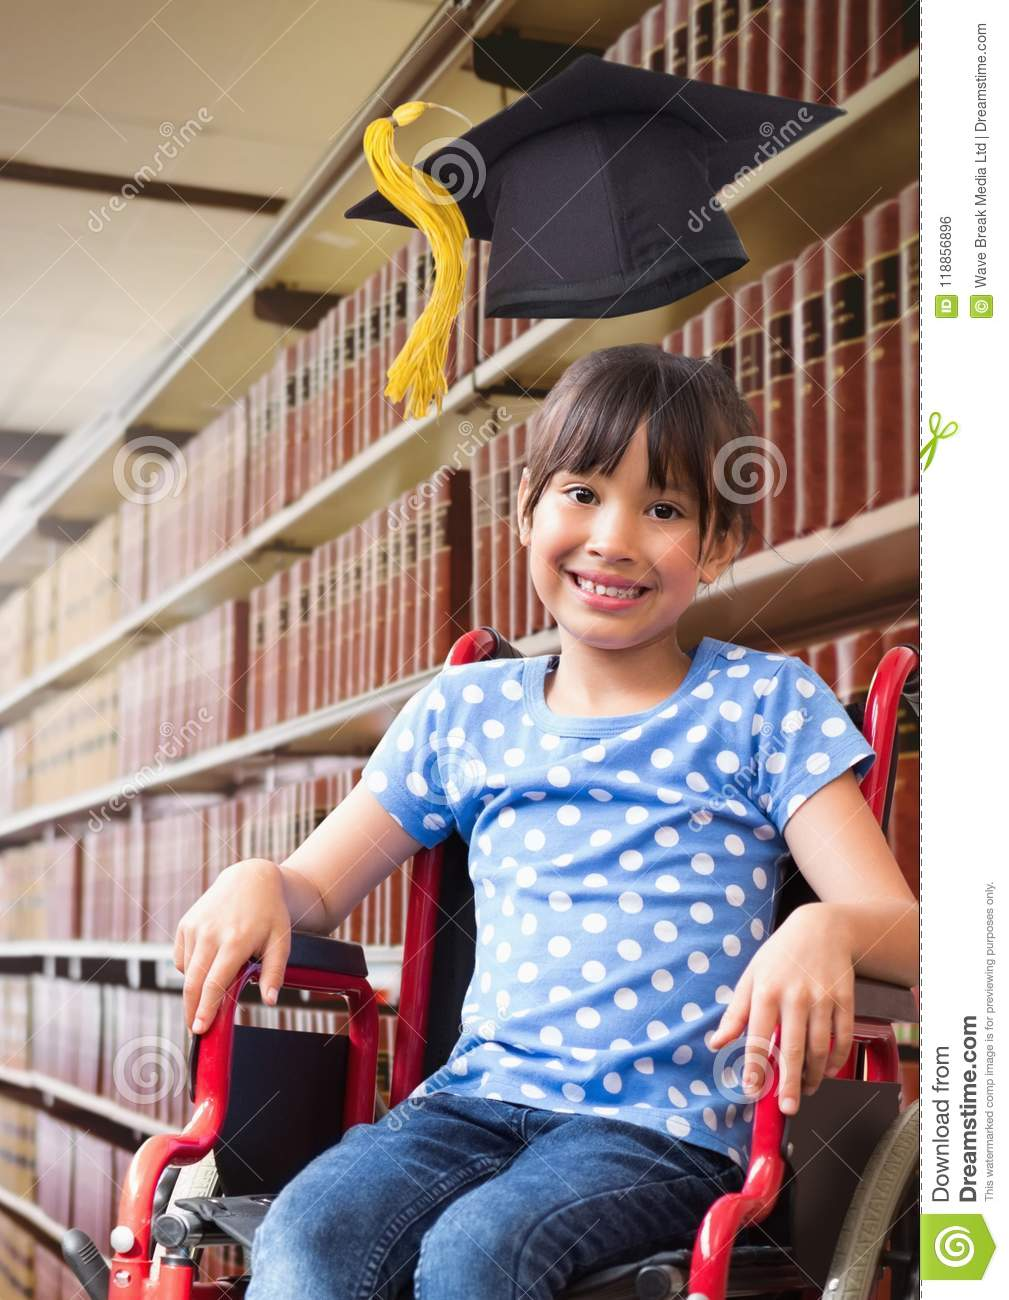 Disabled School girl in education library in wheelchair with graduation hat